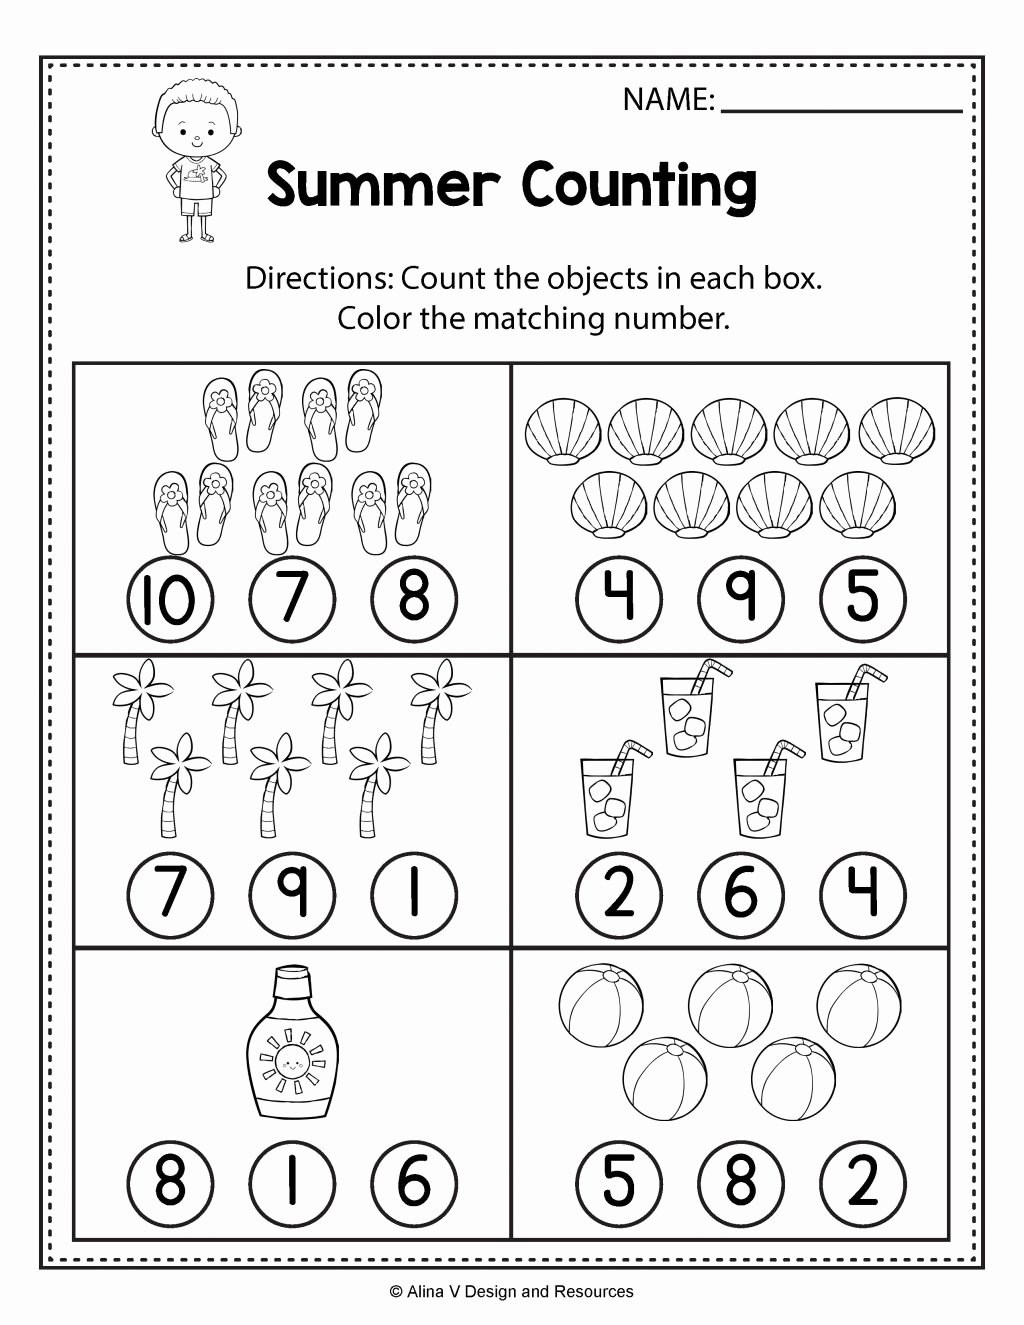 Printable Worksheets for Preschoolers Math Ideas Worksheet Countingsheets Summer Math and Activities